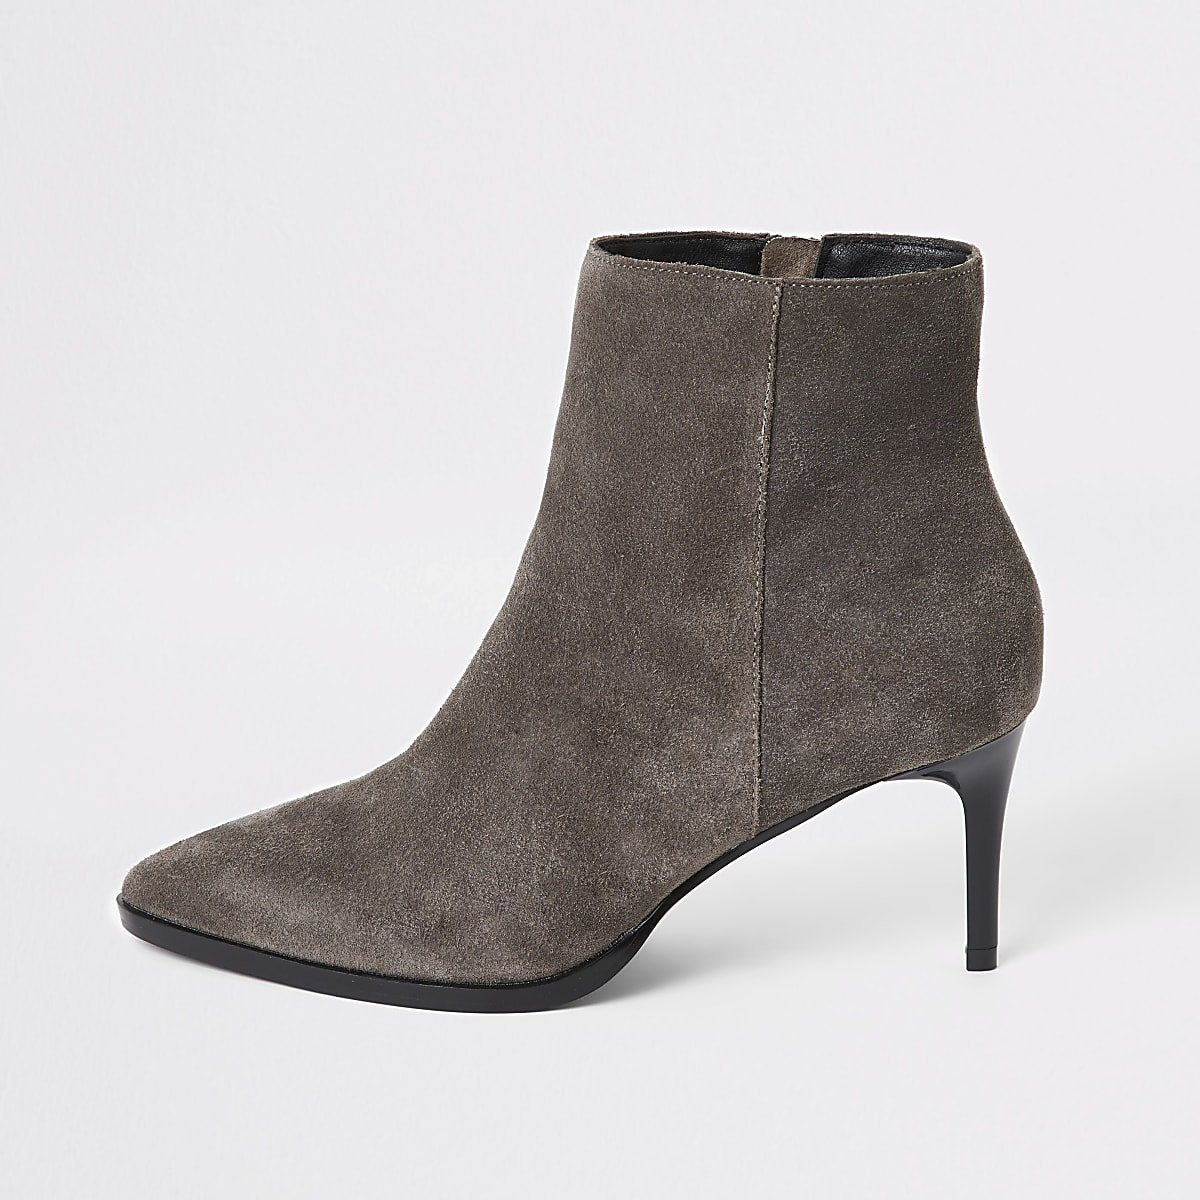 Grey suede pointed toe heeled ankle boots